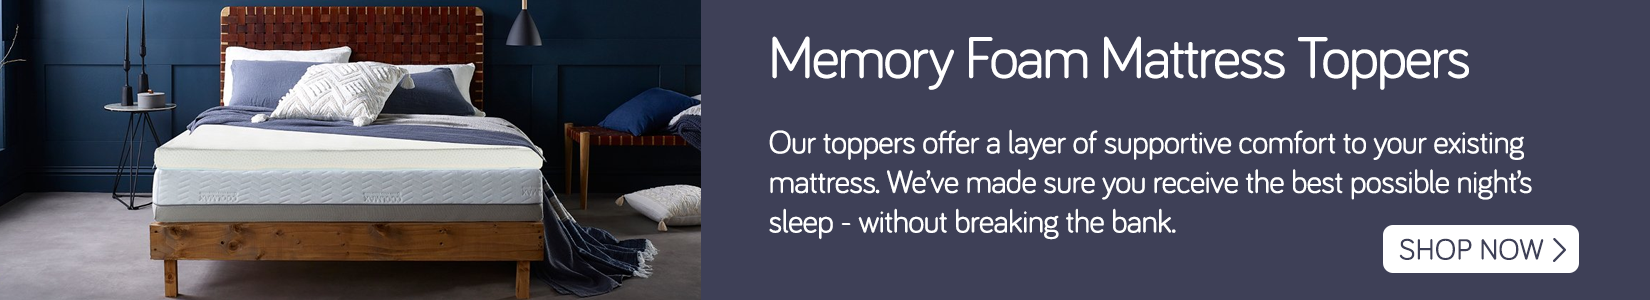 Memory Foam Mattress Toppers - Shop Now